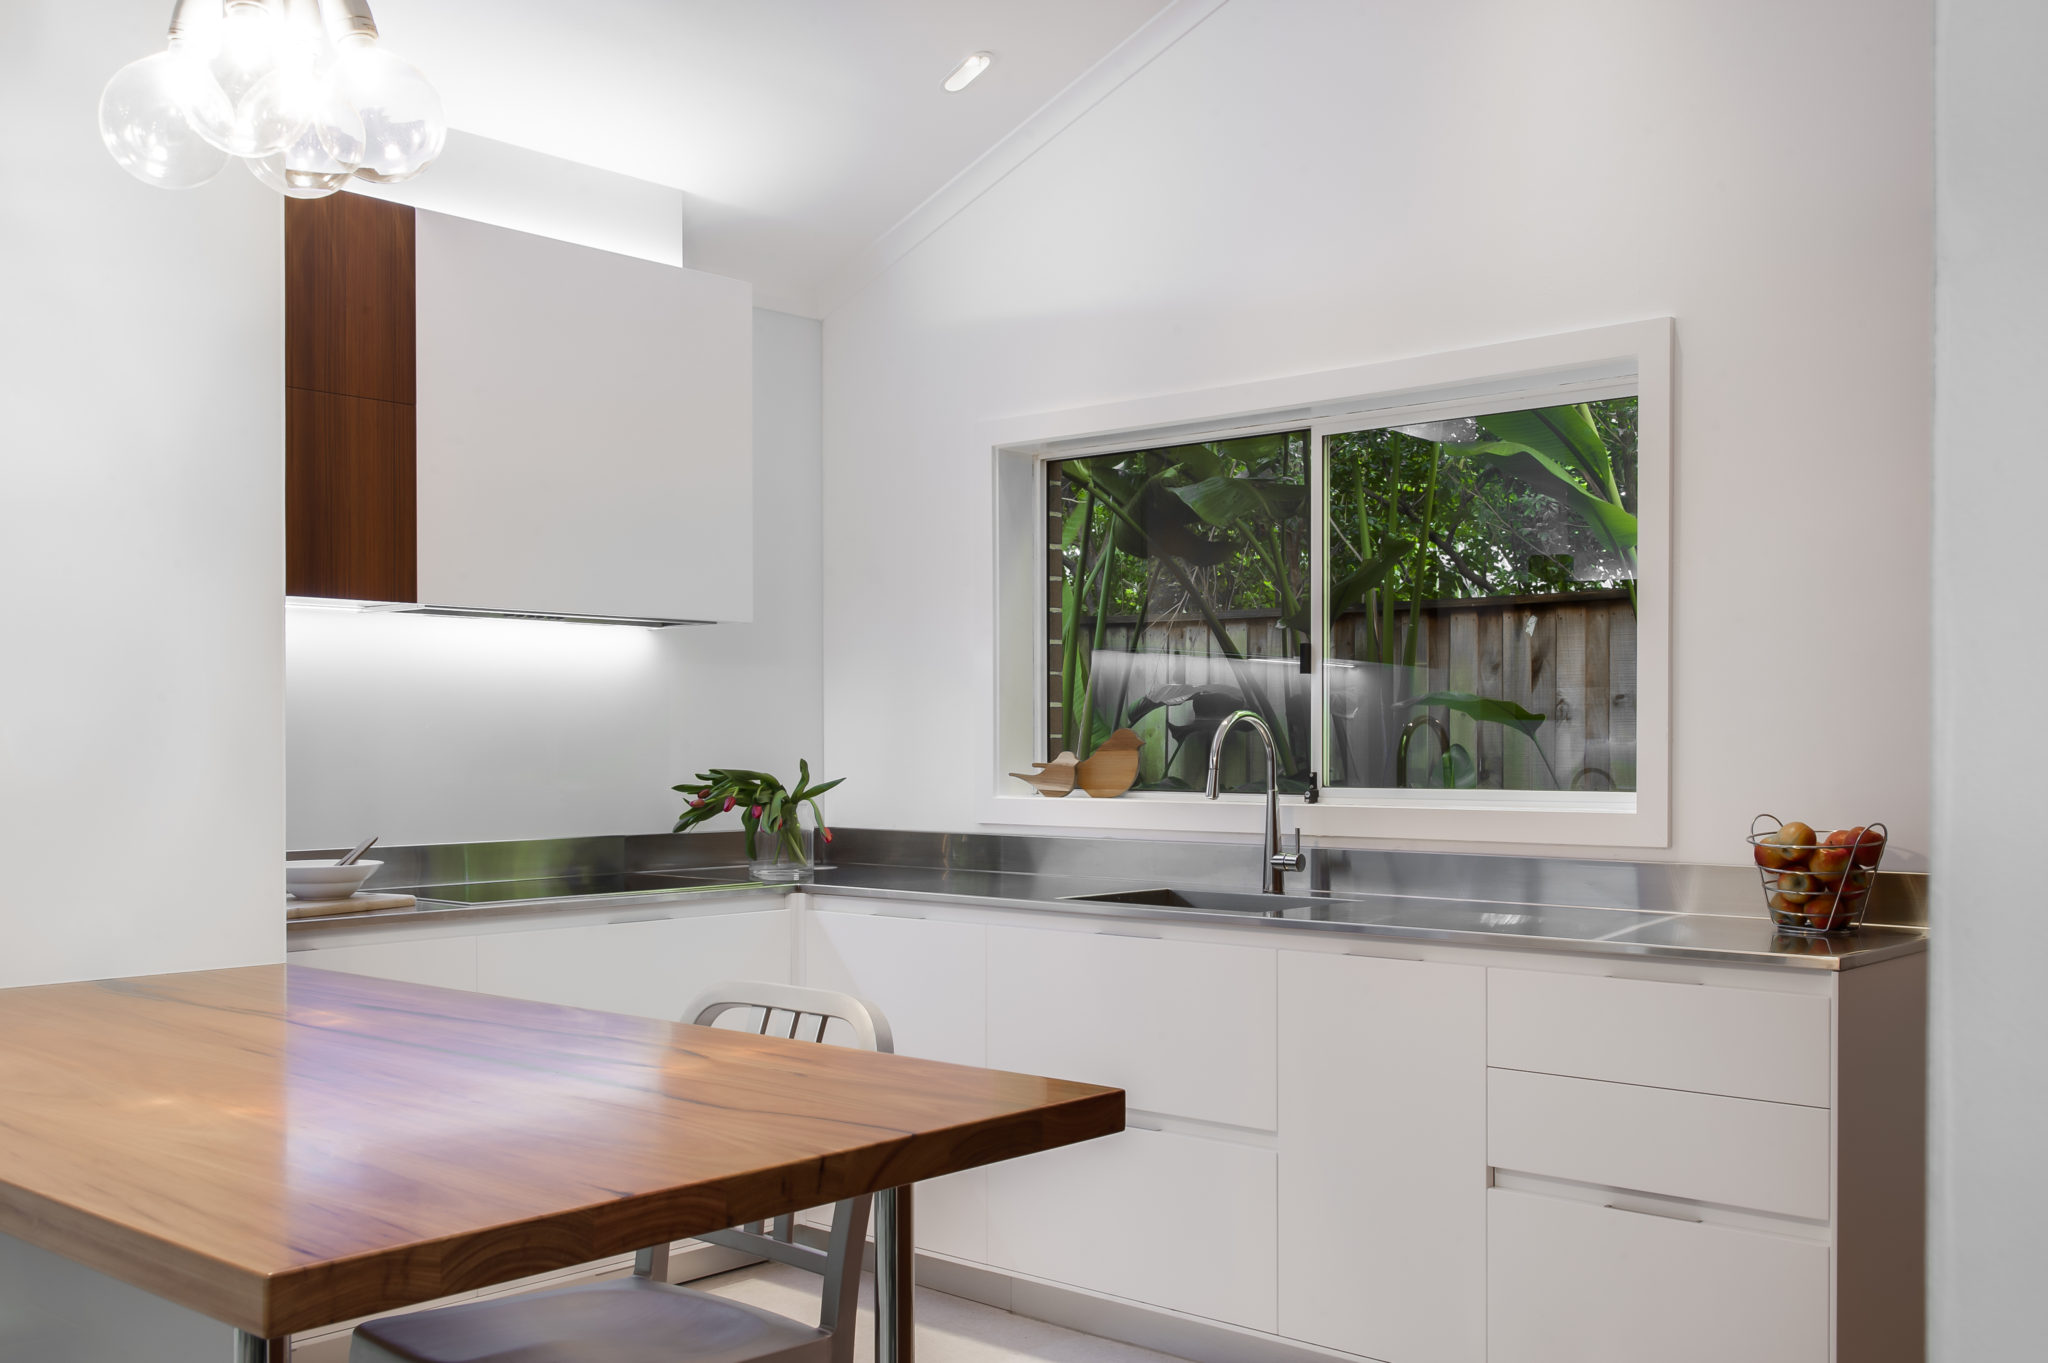 kbdi nsw small kitchen design year 2013 darren. Interior Design Ideas. Home Design Ideas